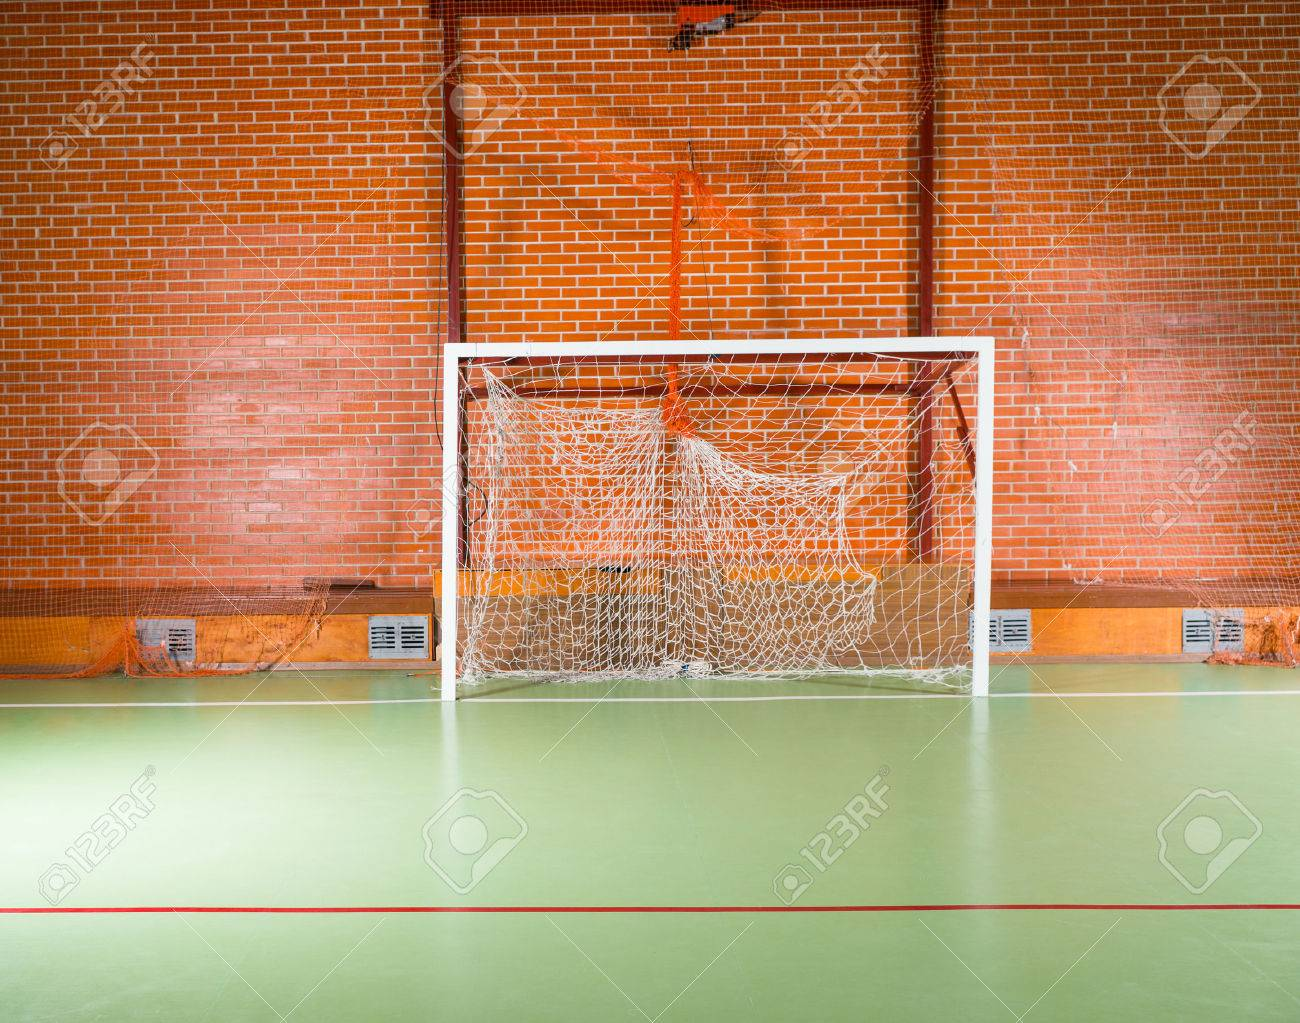 Empty Goal Posts On An Indoor Court Or Playing Field For Soccer ...